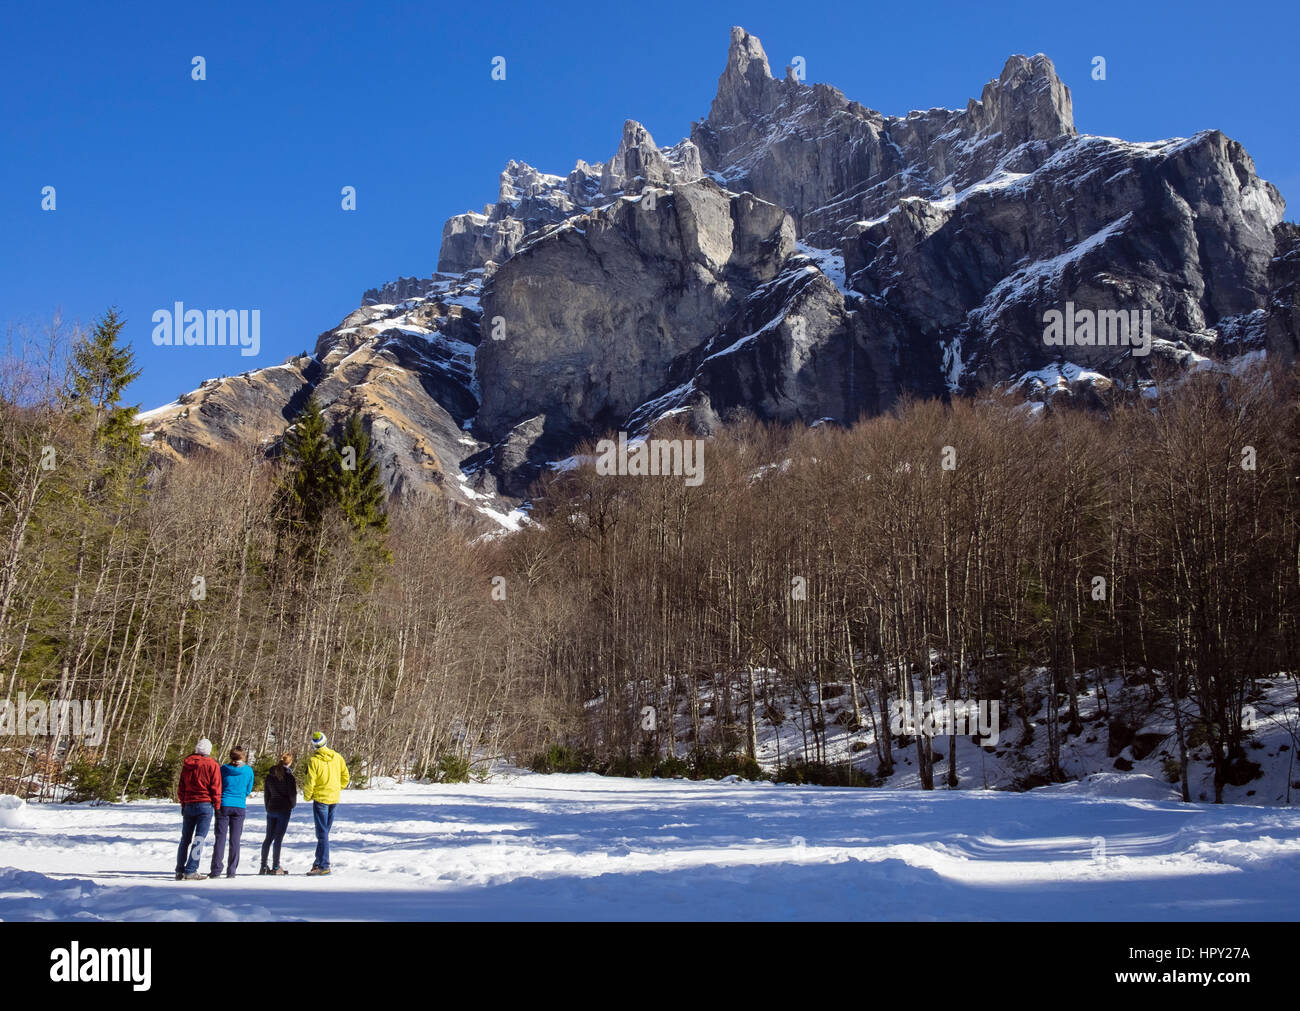 Walkers in Reserve Naturelle de Sixt Fer A Cheval looking up at Pic de Tenneverge mountain in Le massif du Giffre - Stock Image